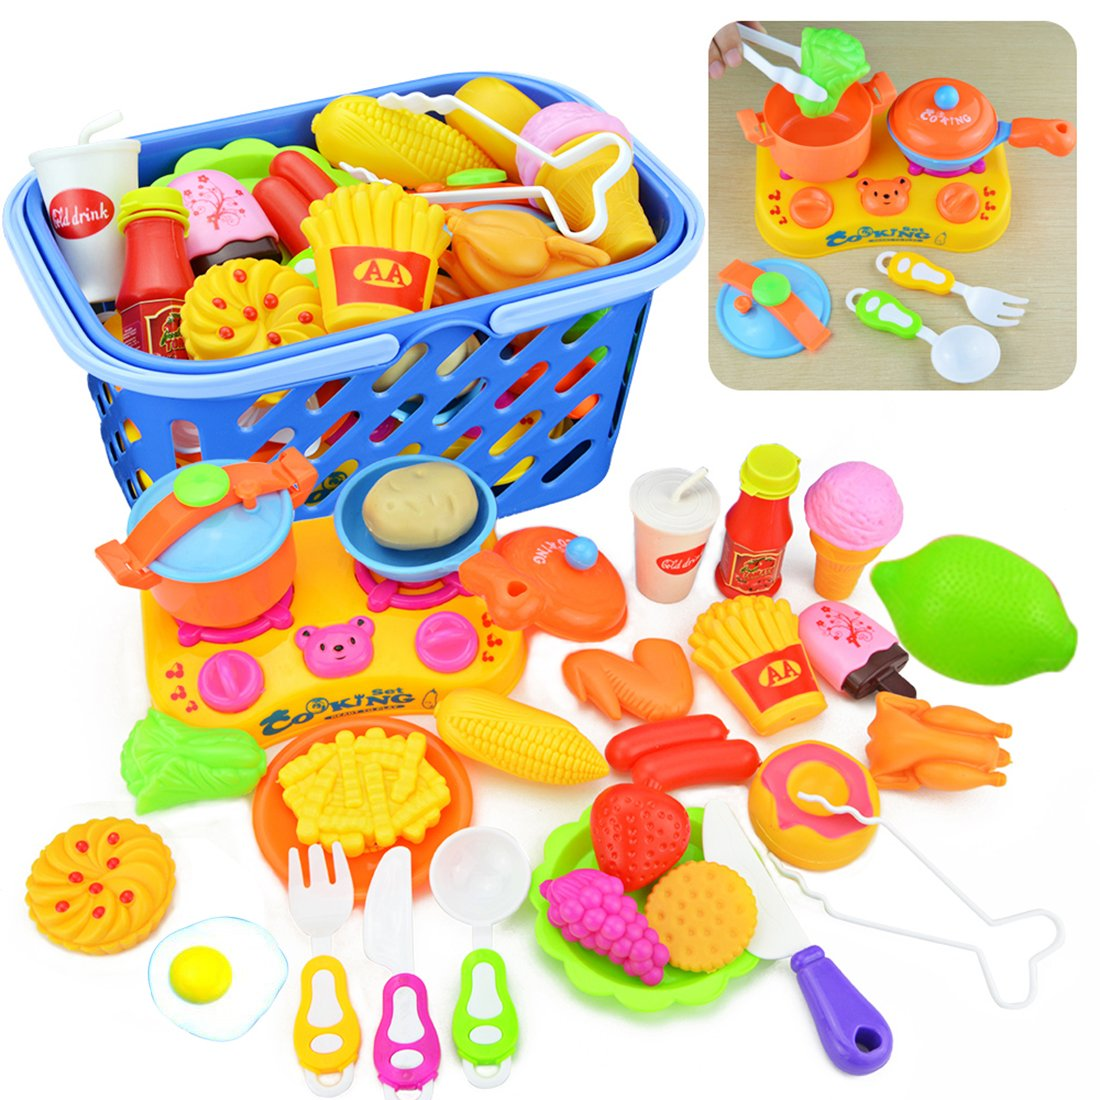 Likeluk 30er Set küchenspielzeug kinderküche set Cutting Toy Pretend ...